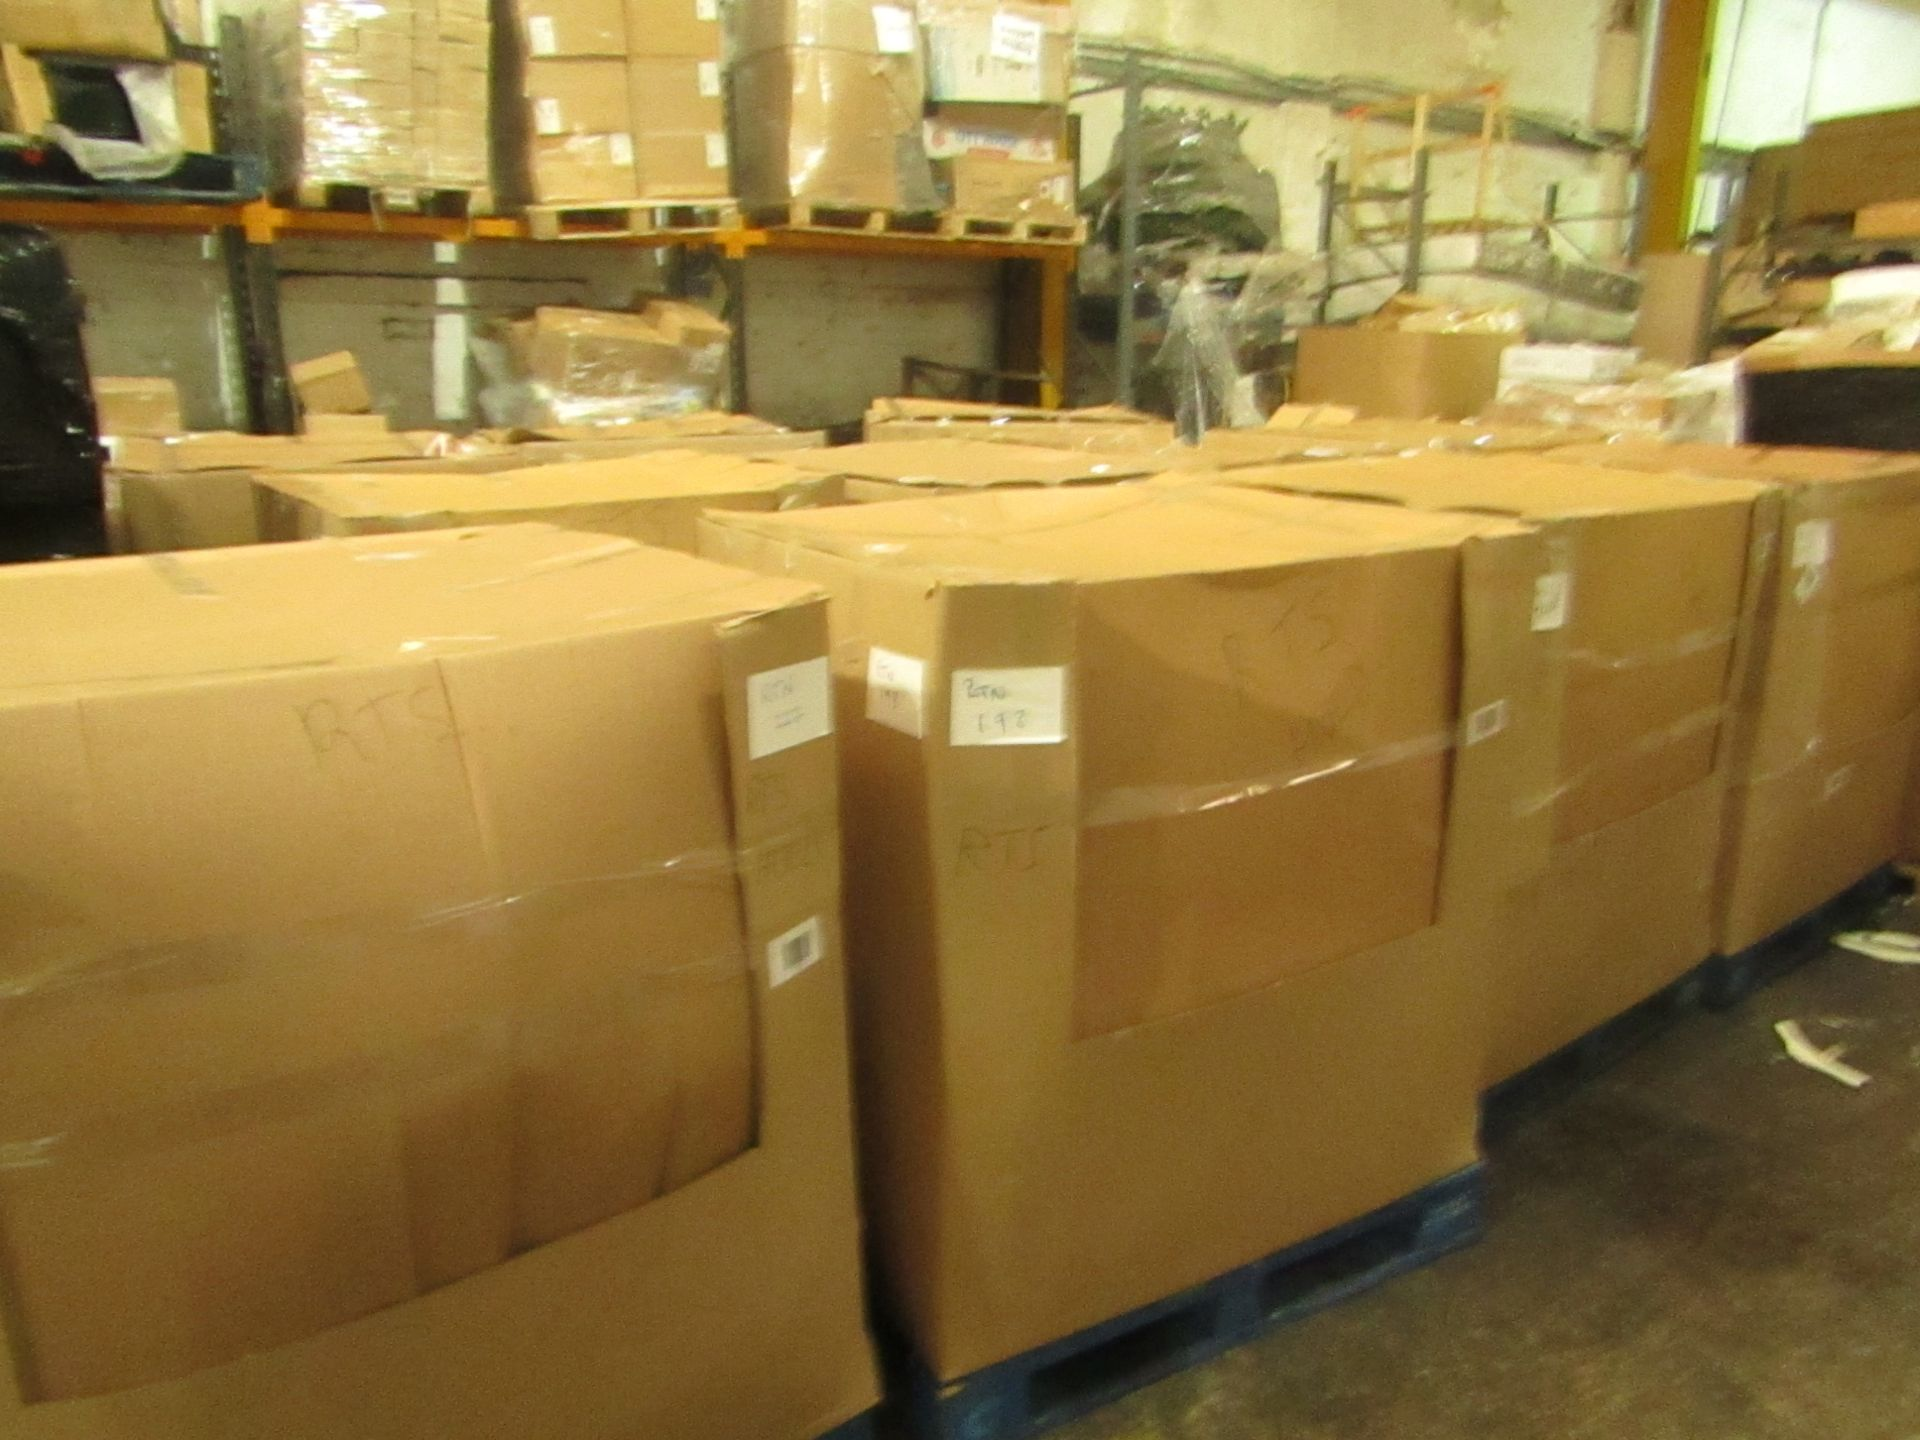 | 1X | PALLET OF APPROX 20-30 UNMANIFESTED ELECTRICAL ITEMS, ALL RAW CUSTOMER RETURNS SOME MAY BE - Image 2 of 2